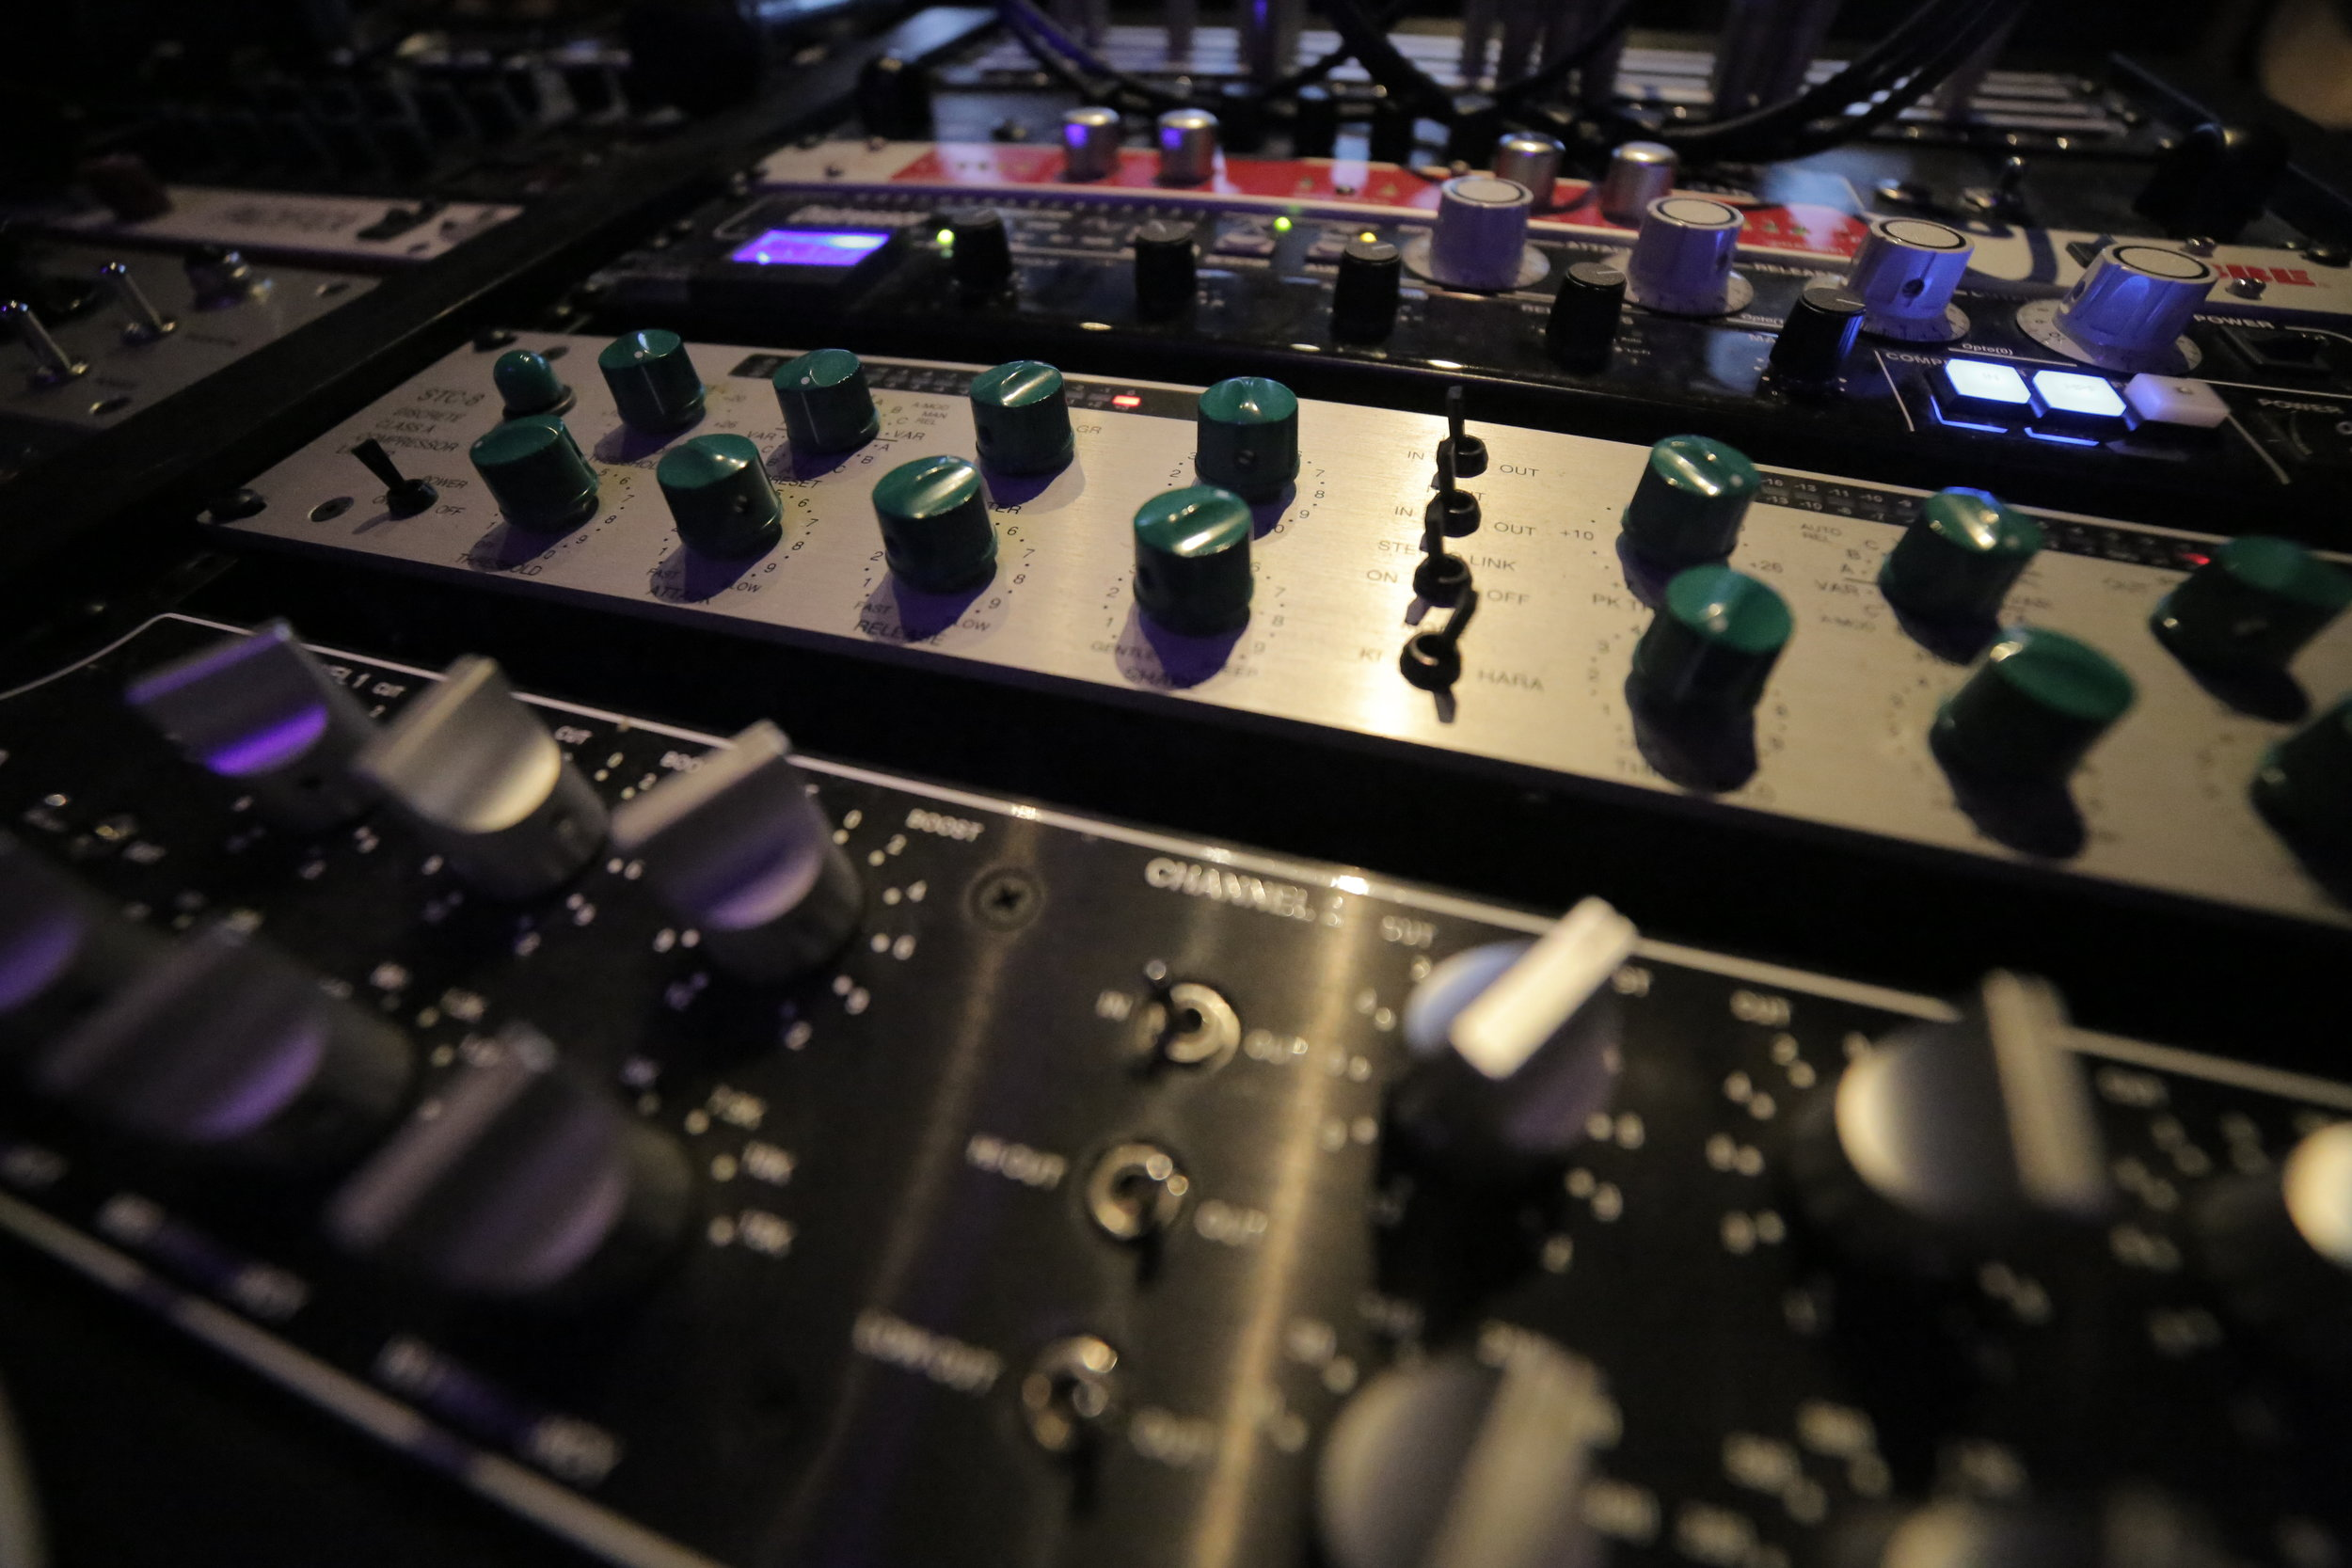 MASTERING - Let us add the final touches to your masterpiece with professional mastering services.